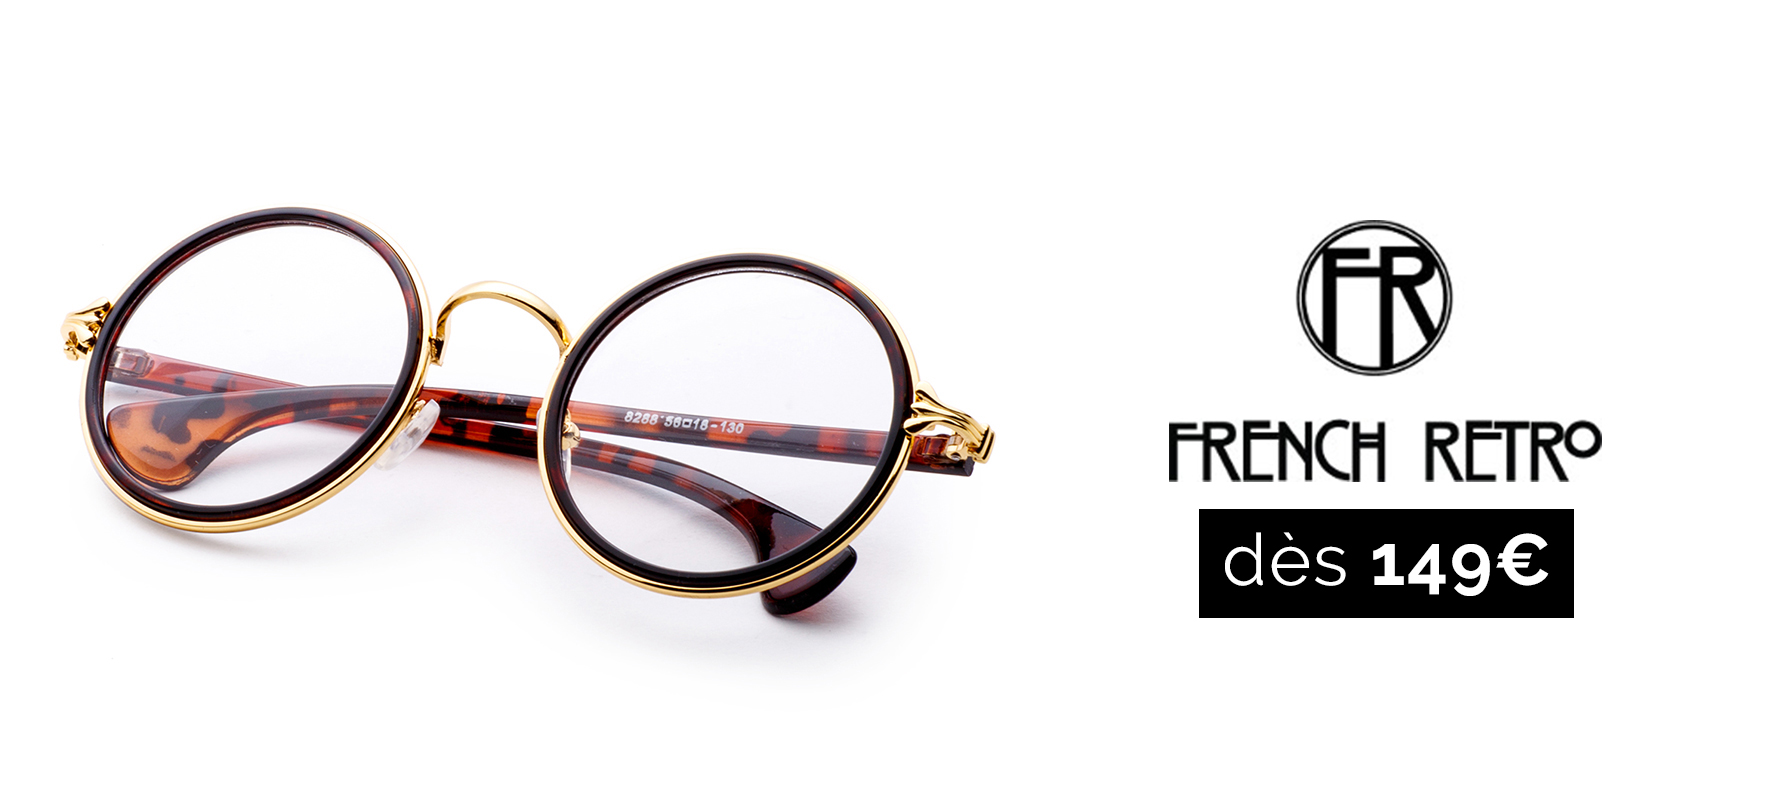 French retro lunettes